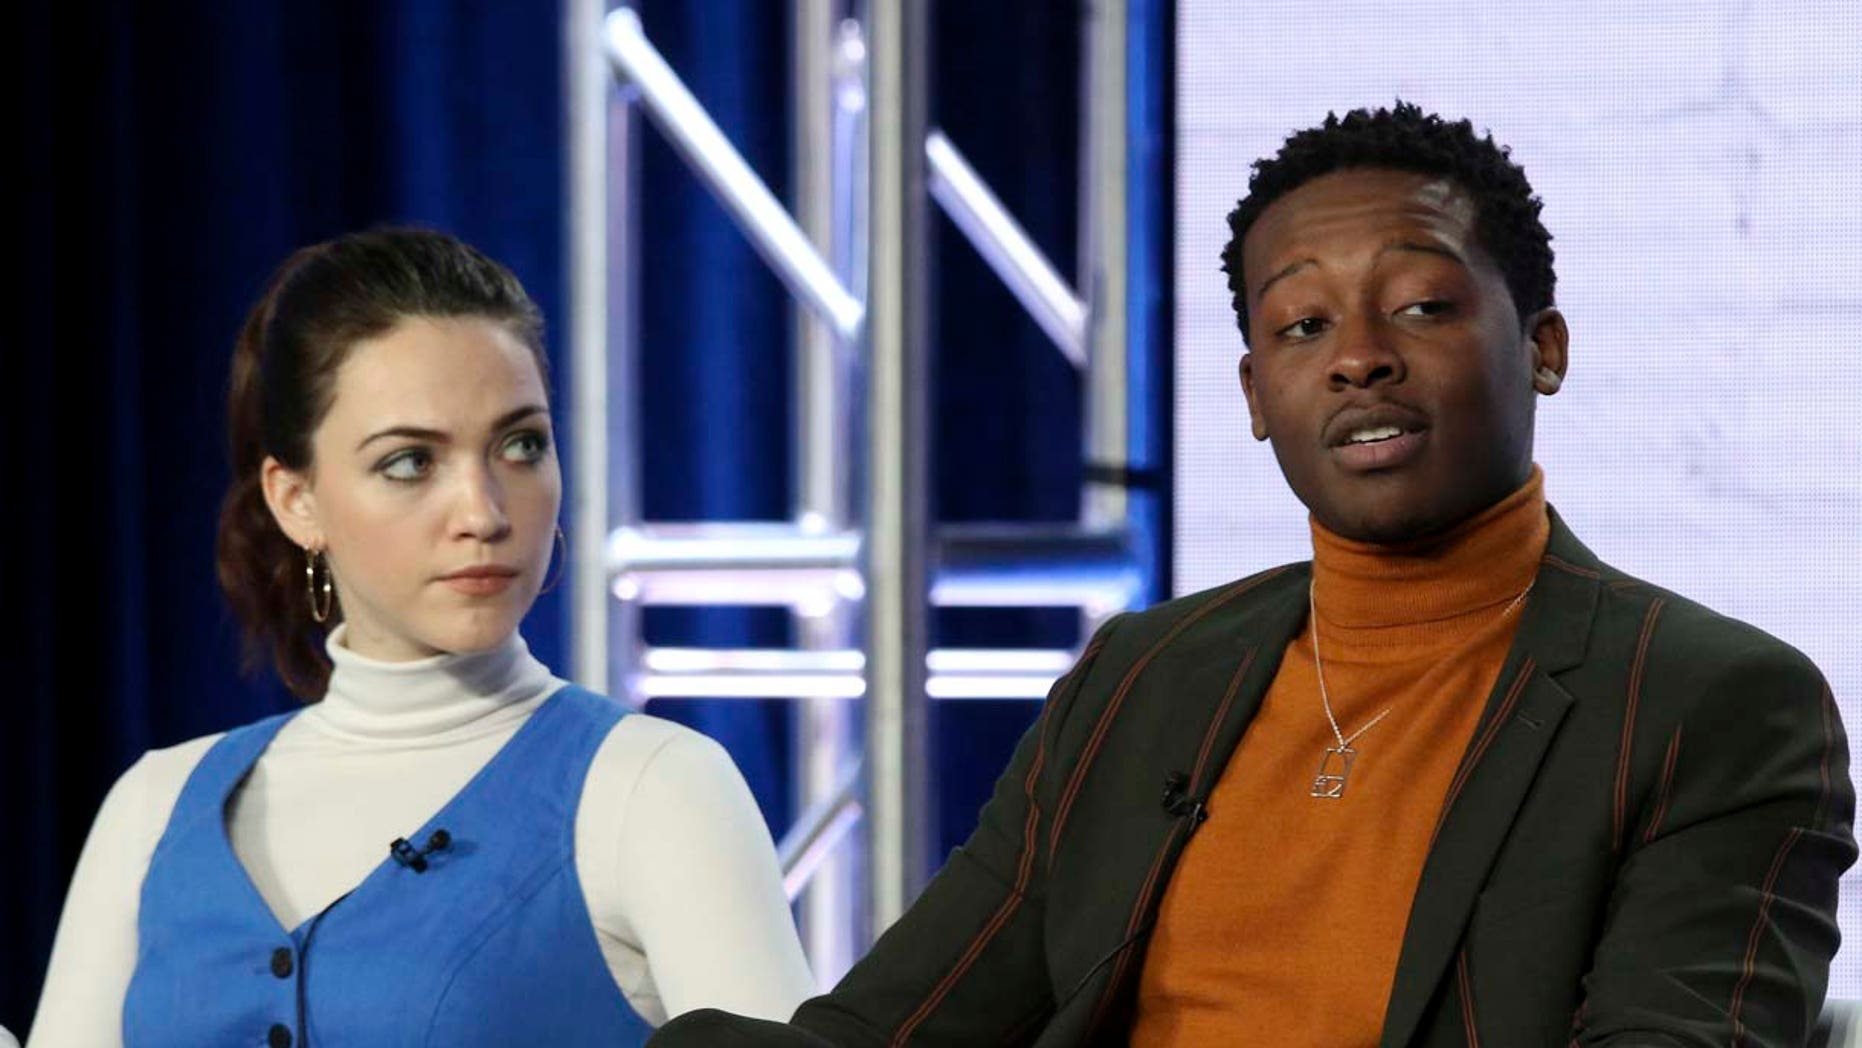 """Violett Beane, left, and Brandon Micheal Hall participate in the """"God Friended Me"""" show panel during the CBS presentation at the Television Critics Association Winter Press Tour at The Langham Huntington on Wednesday, Jan. 30, 2019, in Pasadena, Calif. (Photo by Willy Sanjuan/Invision/AP)"""